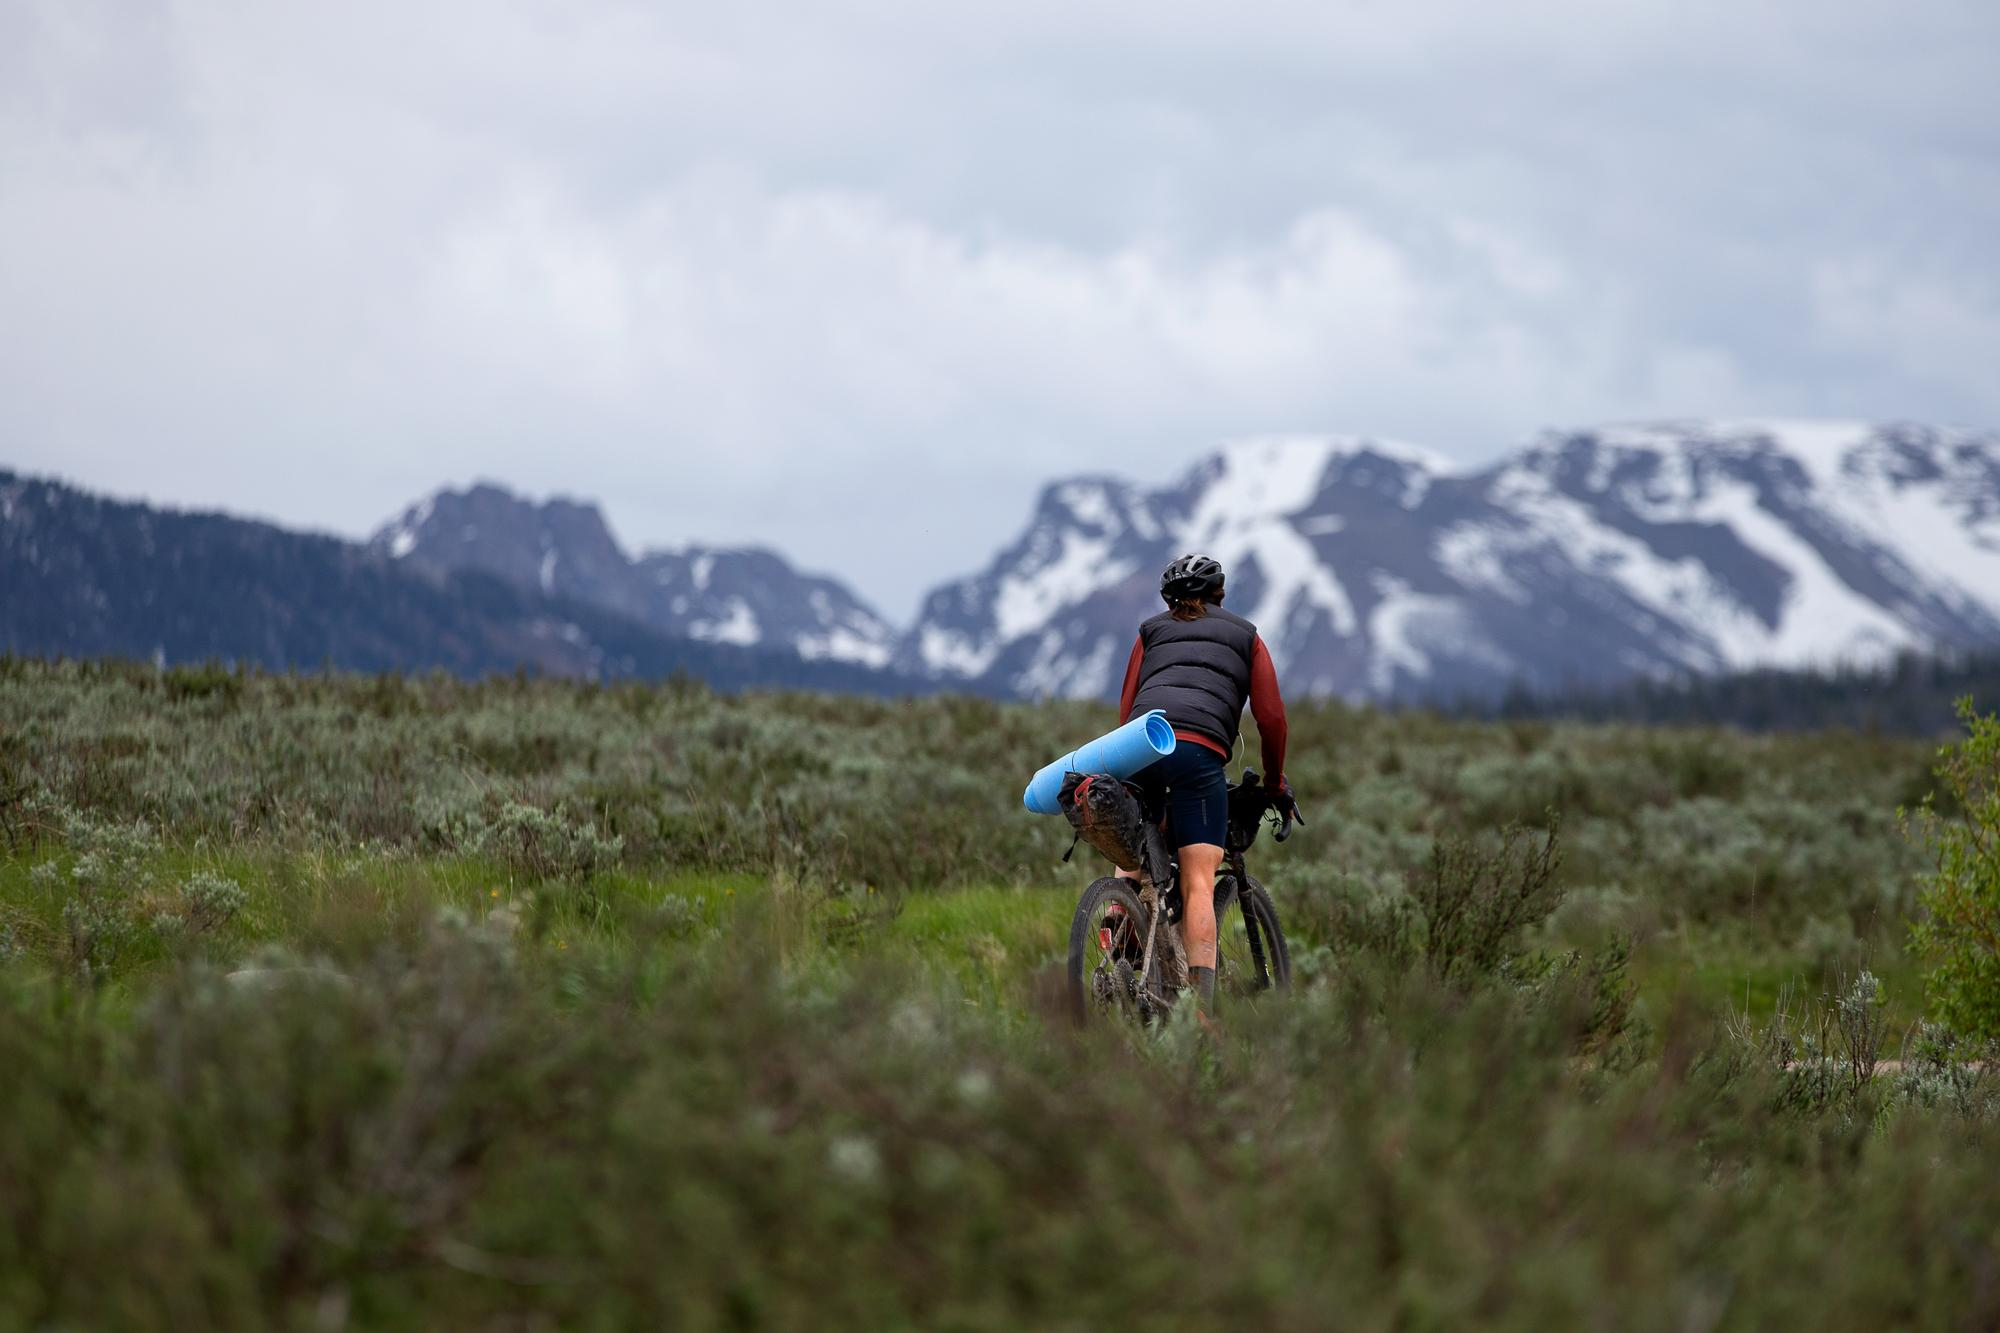 Lael Wilcox rides towards Pinedale, Wyoming. (Rugile Kaladyte)